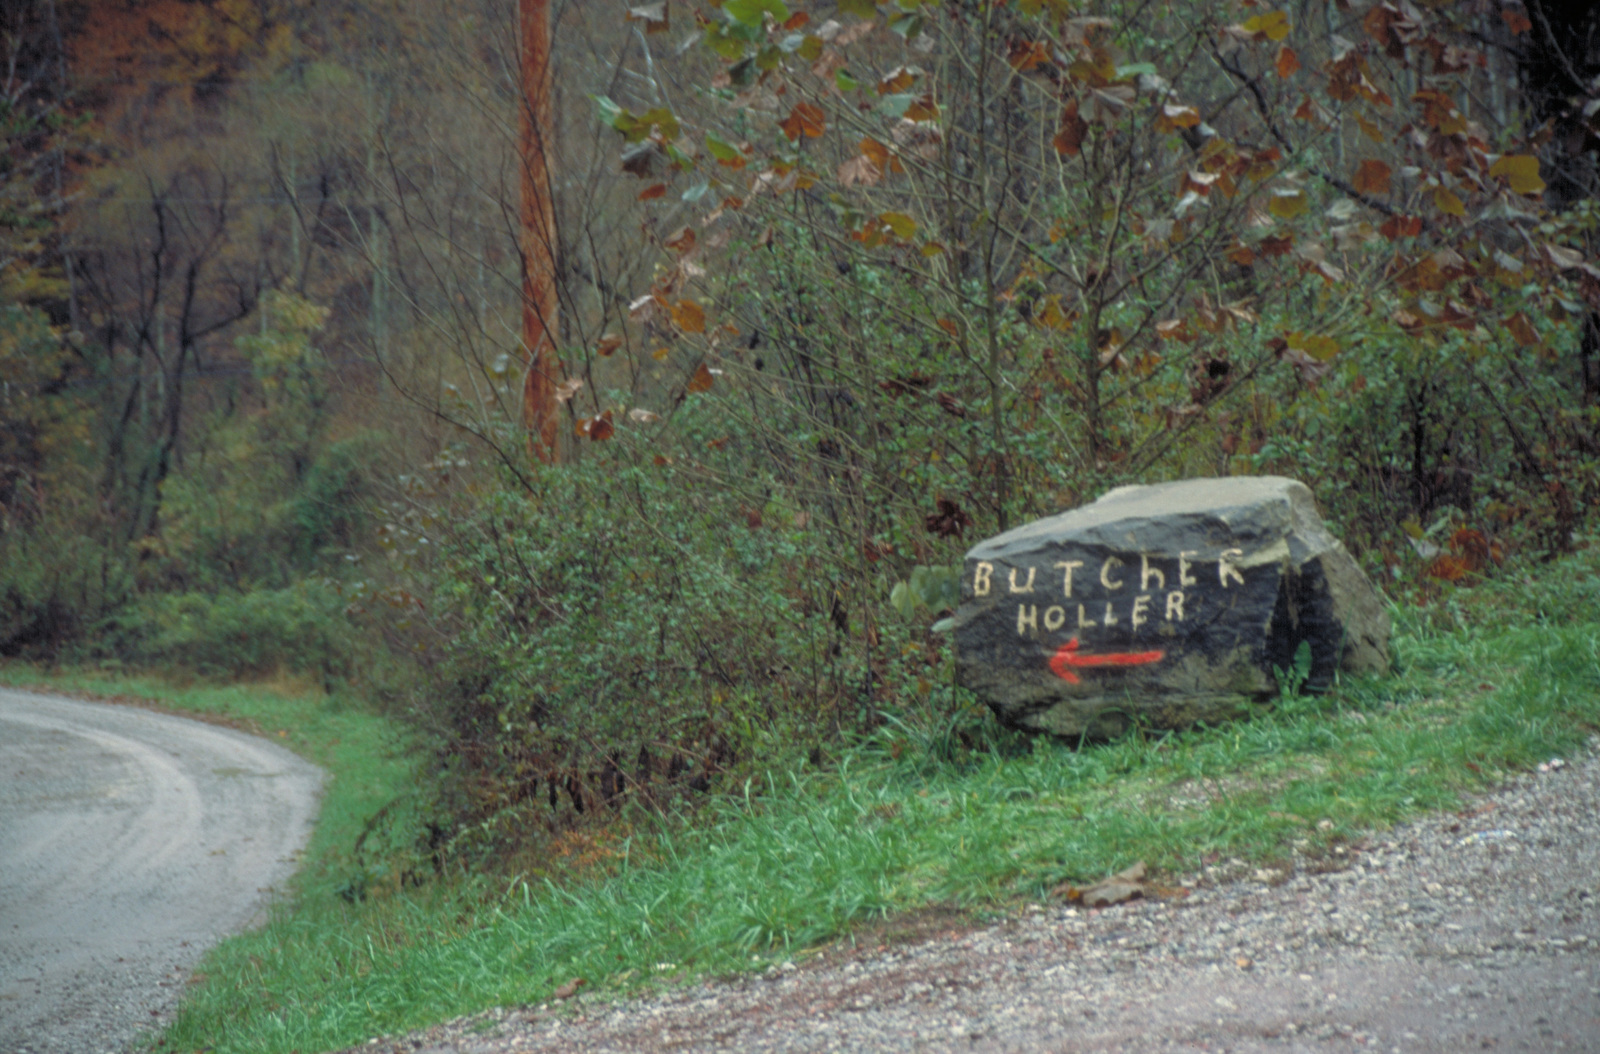 Country Music Highway - Rock to Butcher Hollow